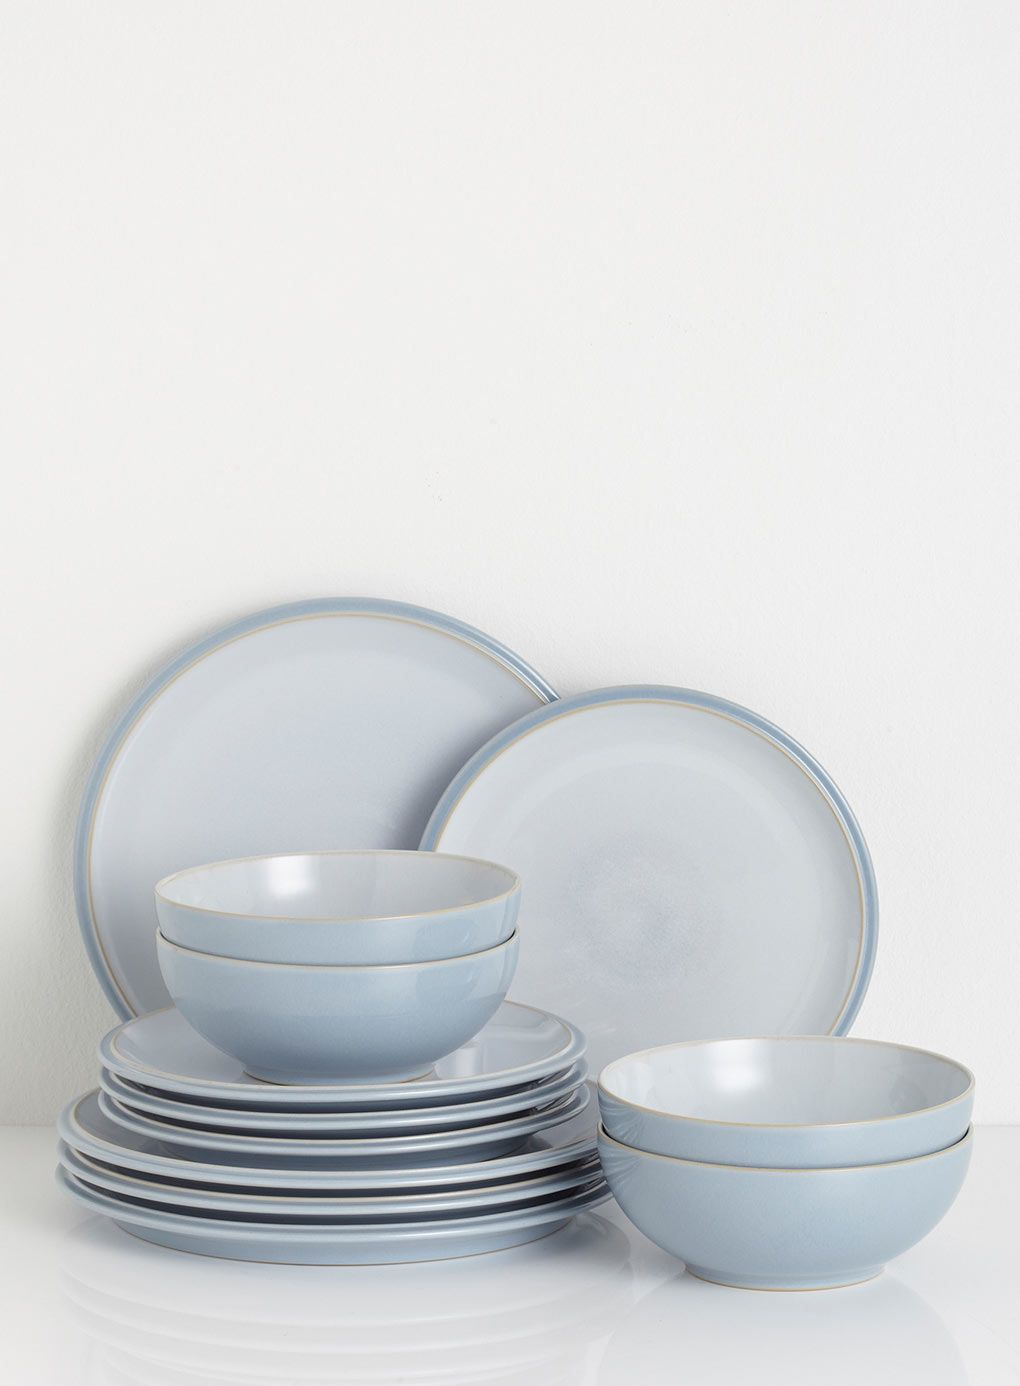 Pale blue Denby everyday 12 piece dinnerset | Besteku0026servies ... Pale Blue Denby Everyday 12 Piece Dinnerset Bestek Servies & Marvelous Denby Everyday Teal Ideas - Best Image Engine - maxledpro.com